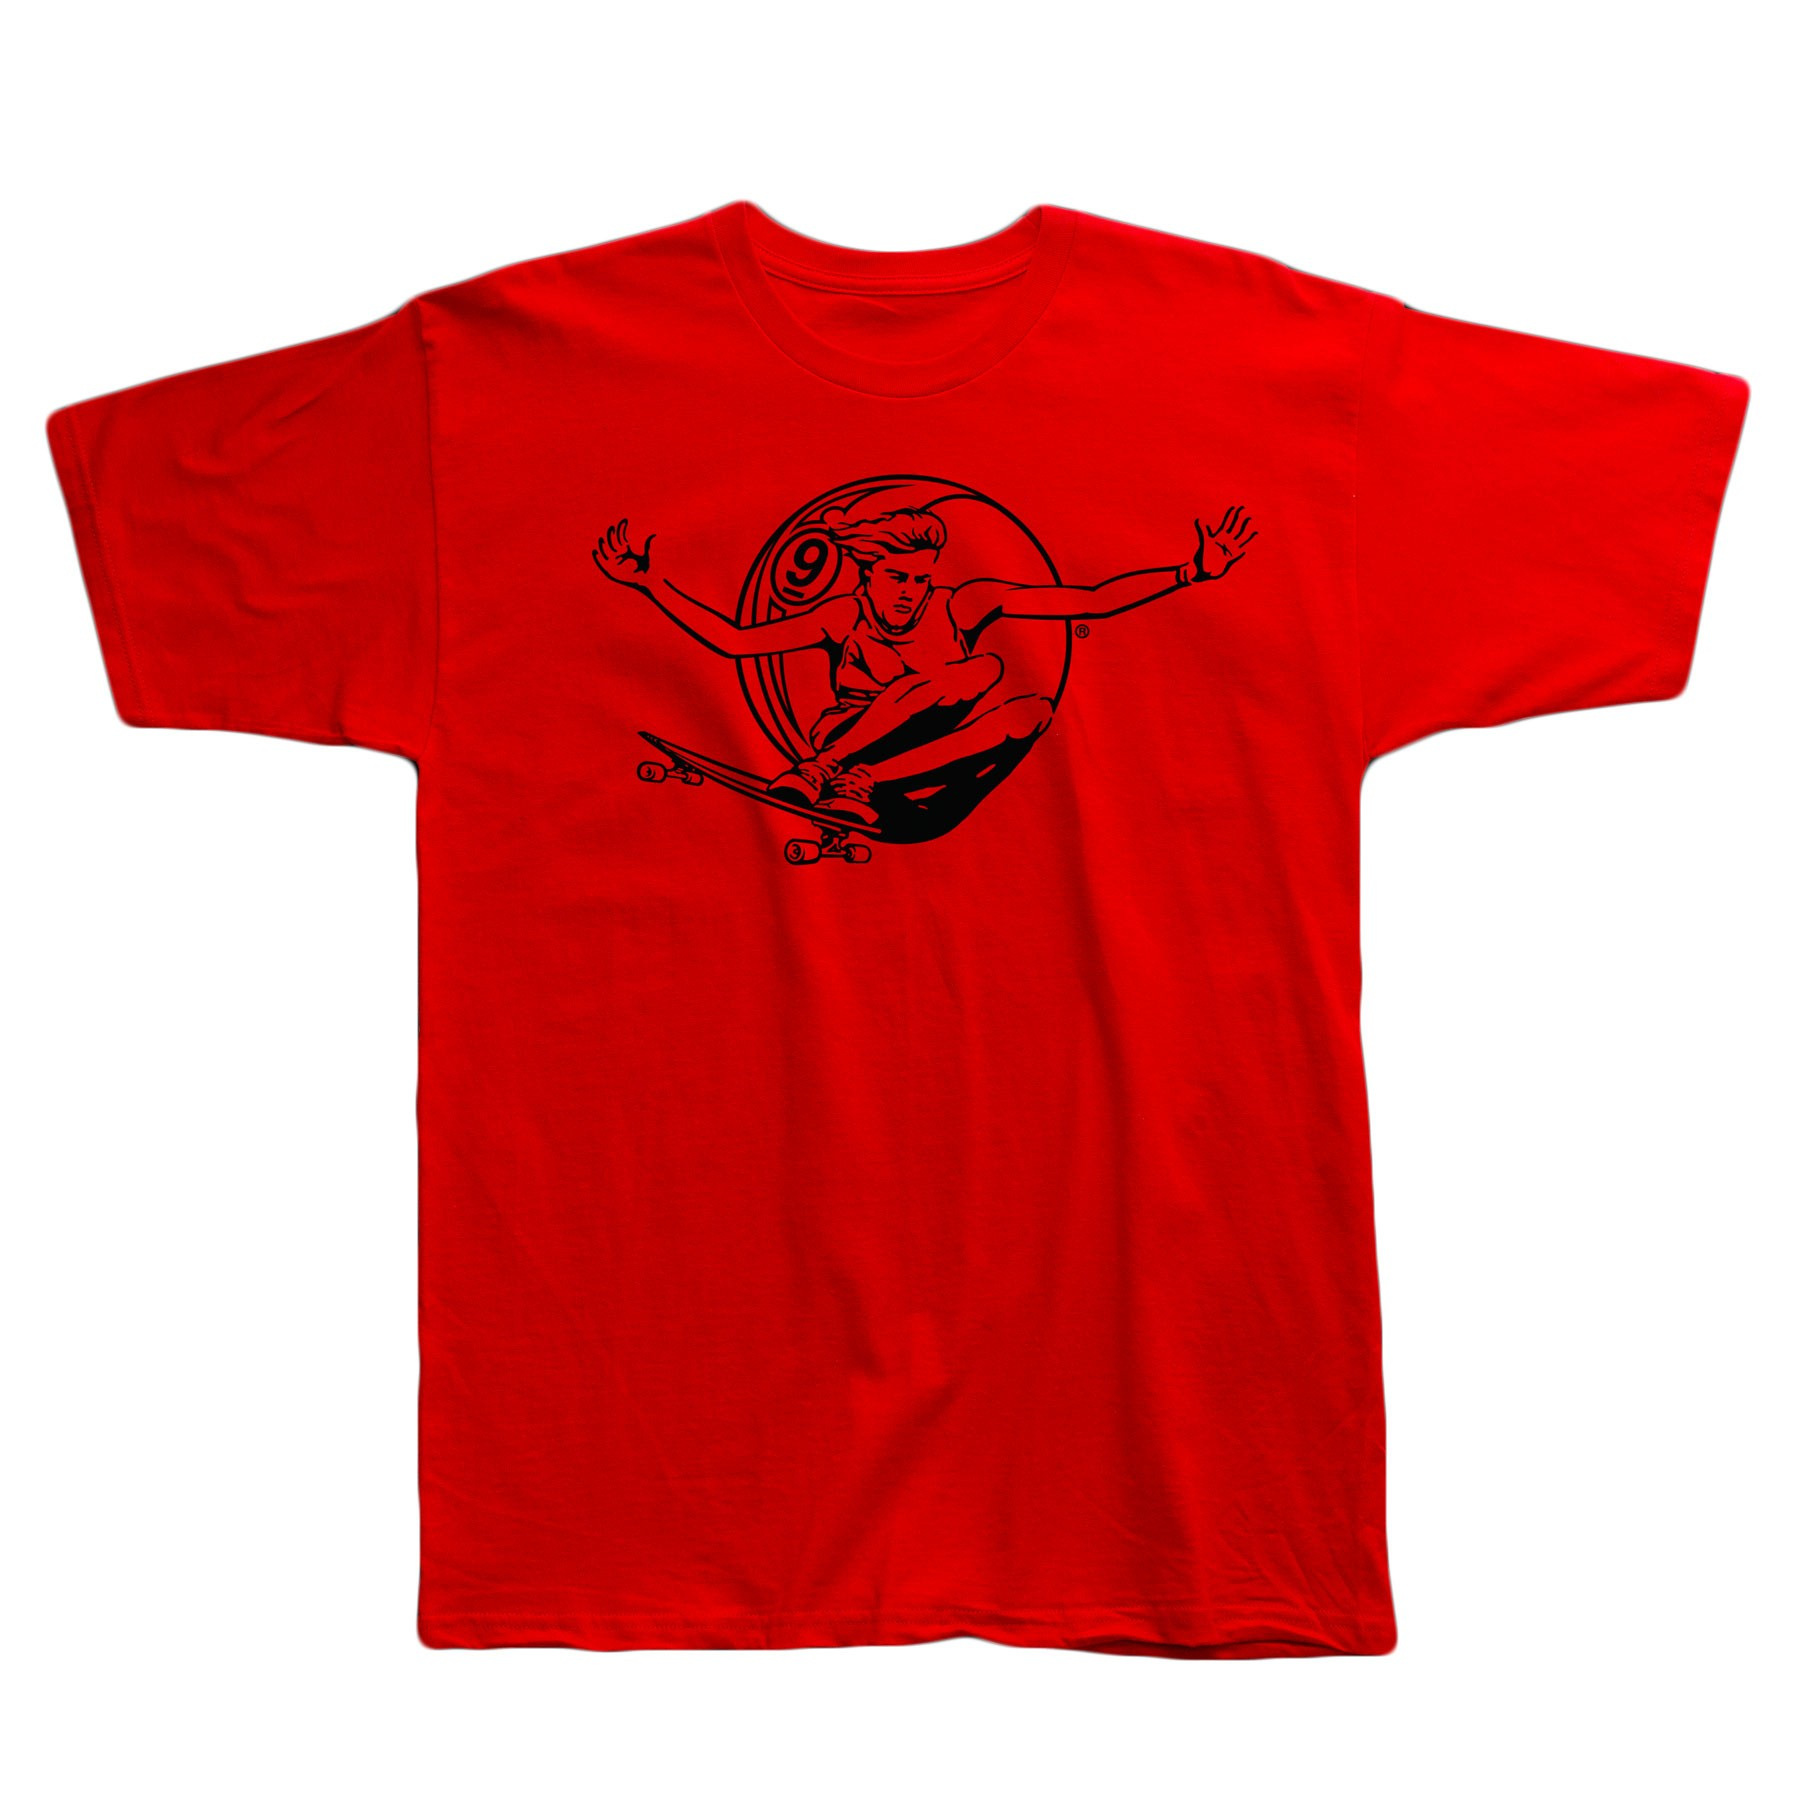 Sector 9 Bert T-Shirt - Red